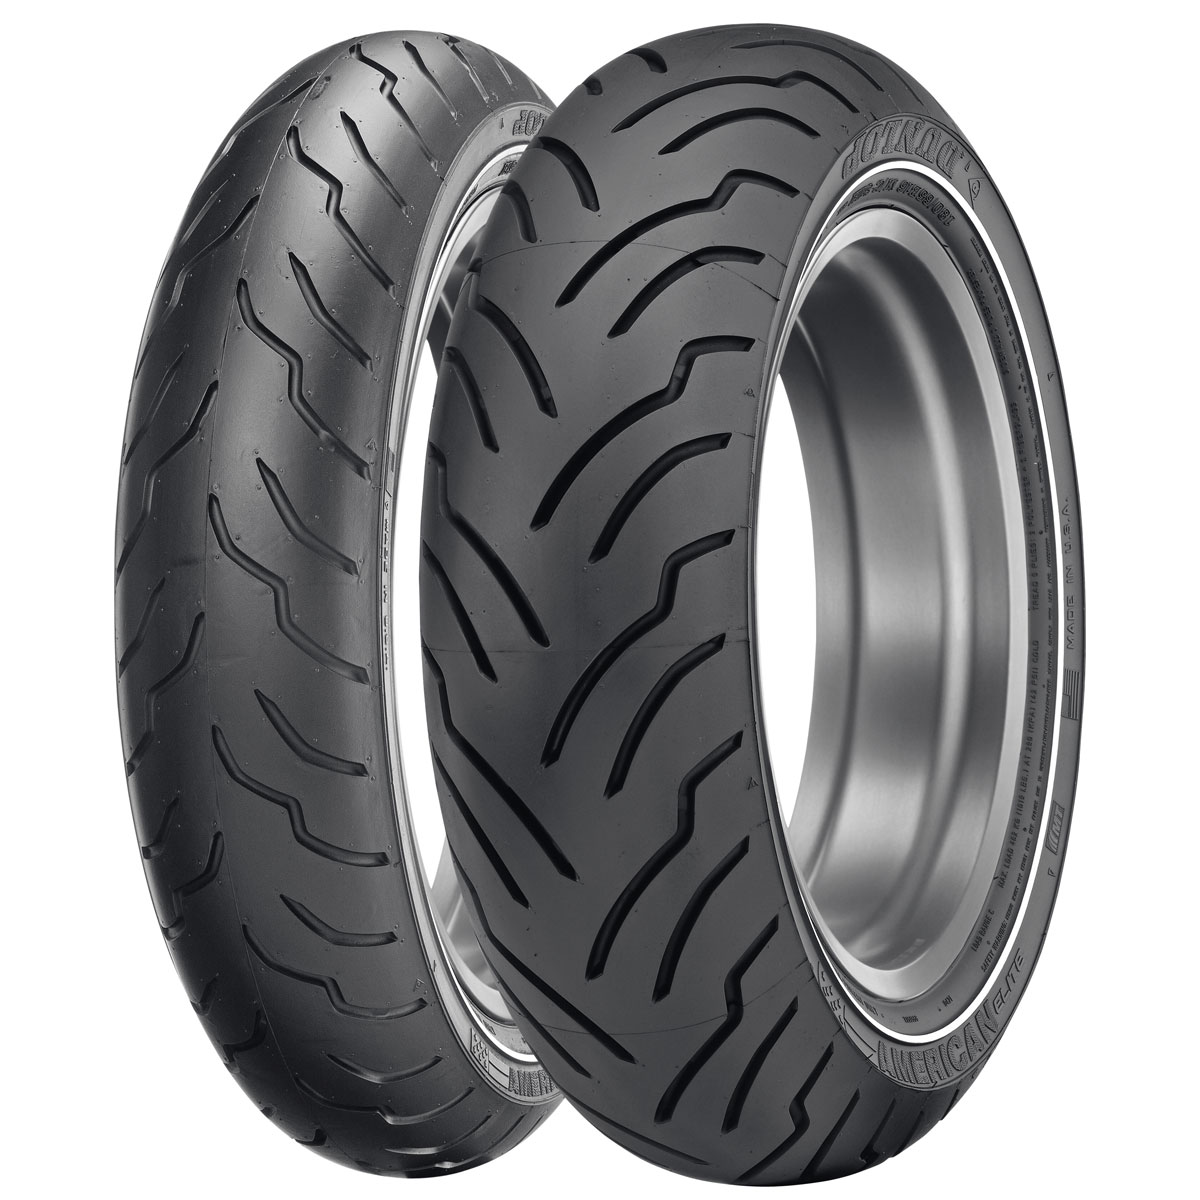 Dunlop American Elite MT90B16 Narrow Whitewall Front Motorcycle Tire